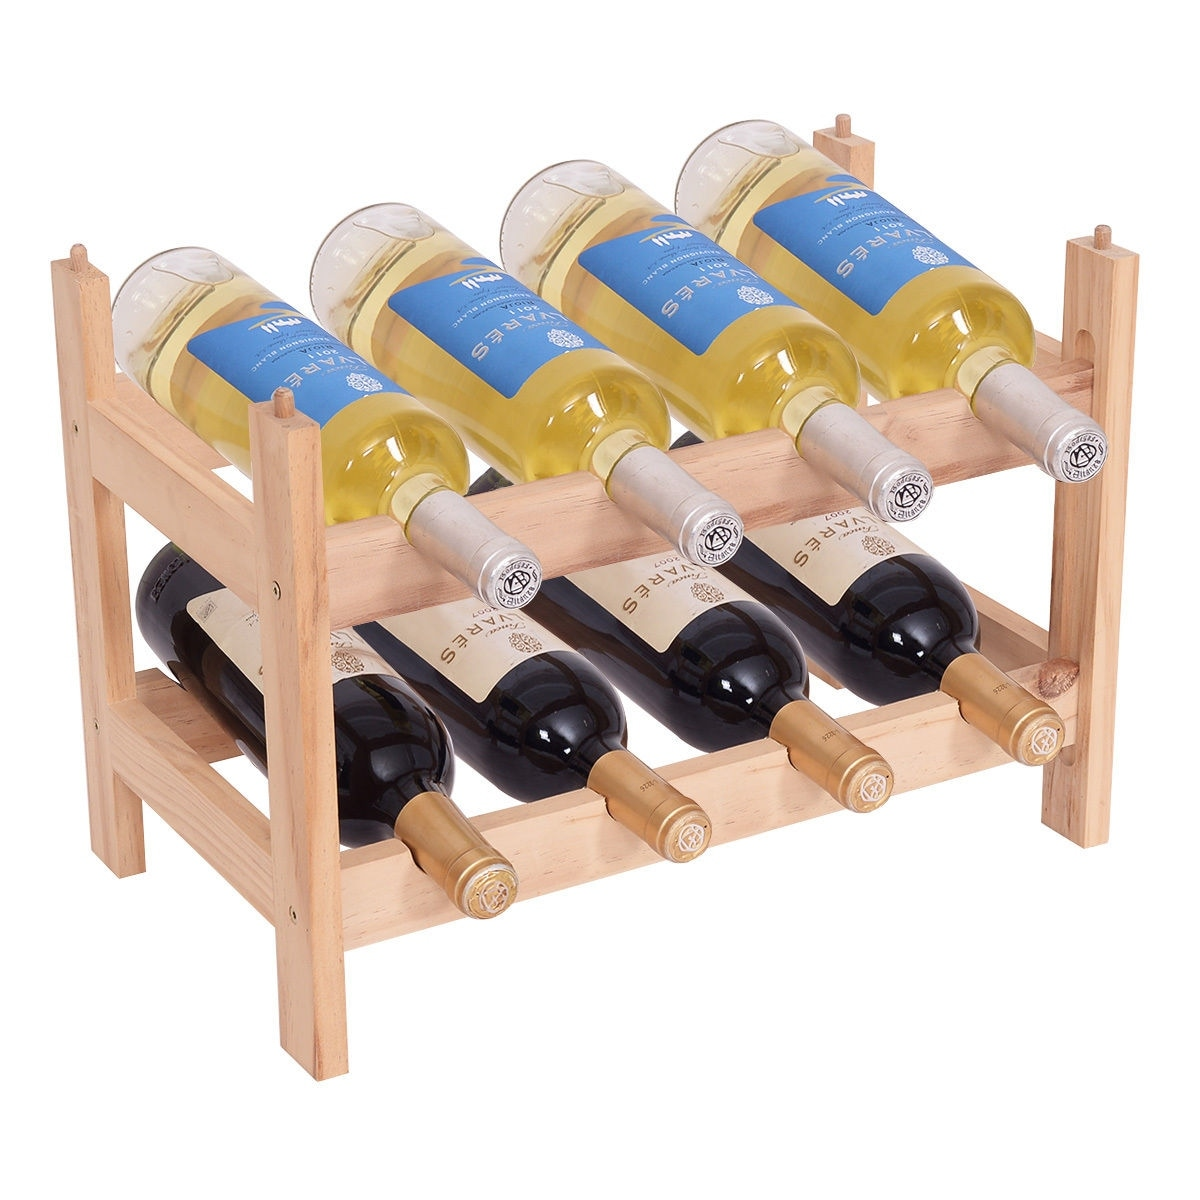 Wooden Bottle Rack Buy Wood Wine Racks Online At Overstock Our Best Kitchen Storage